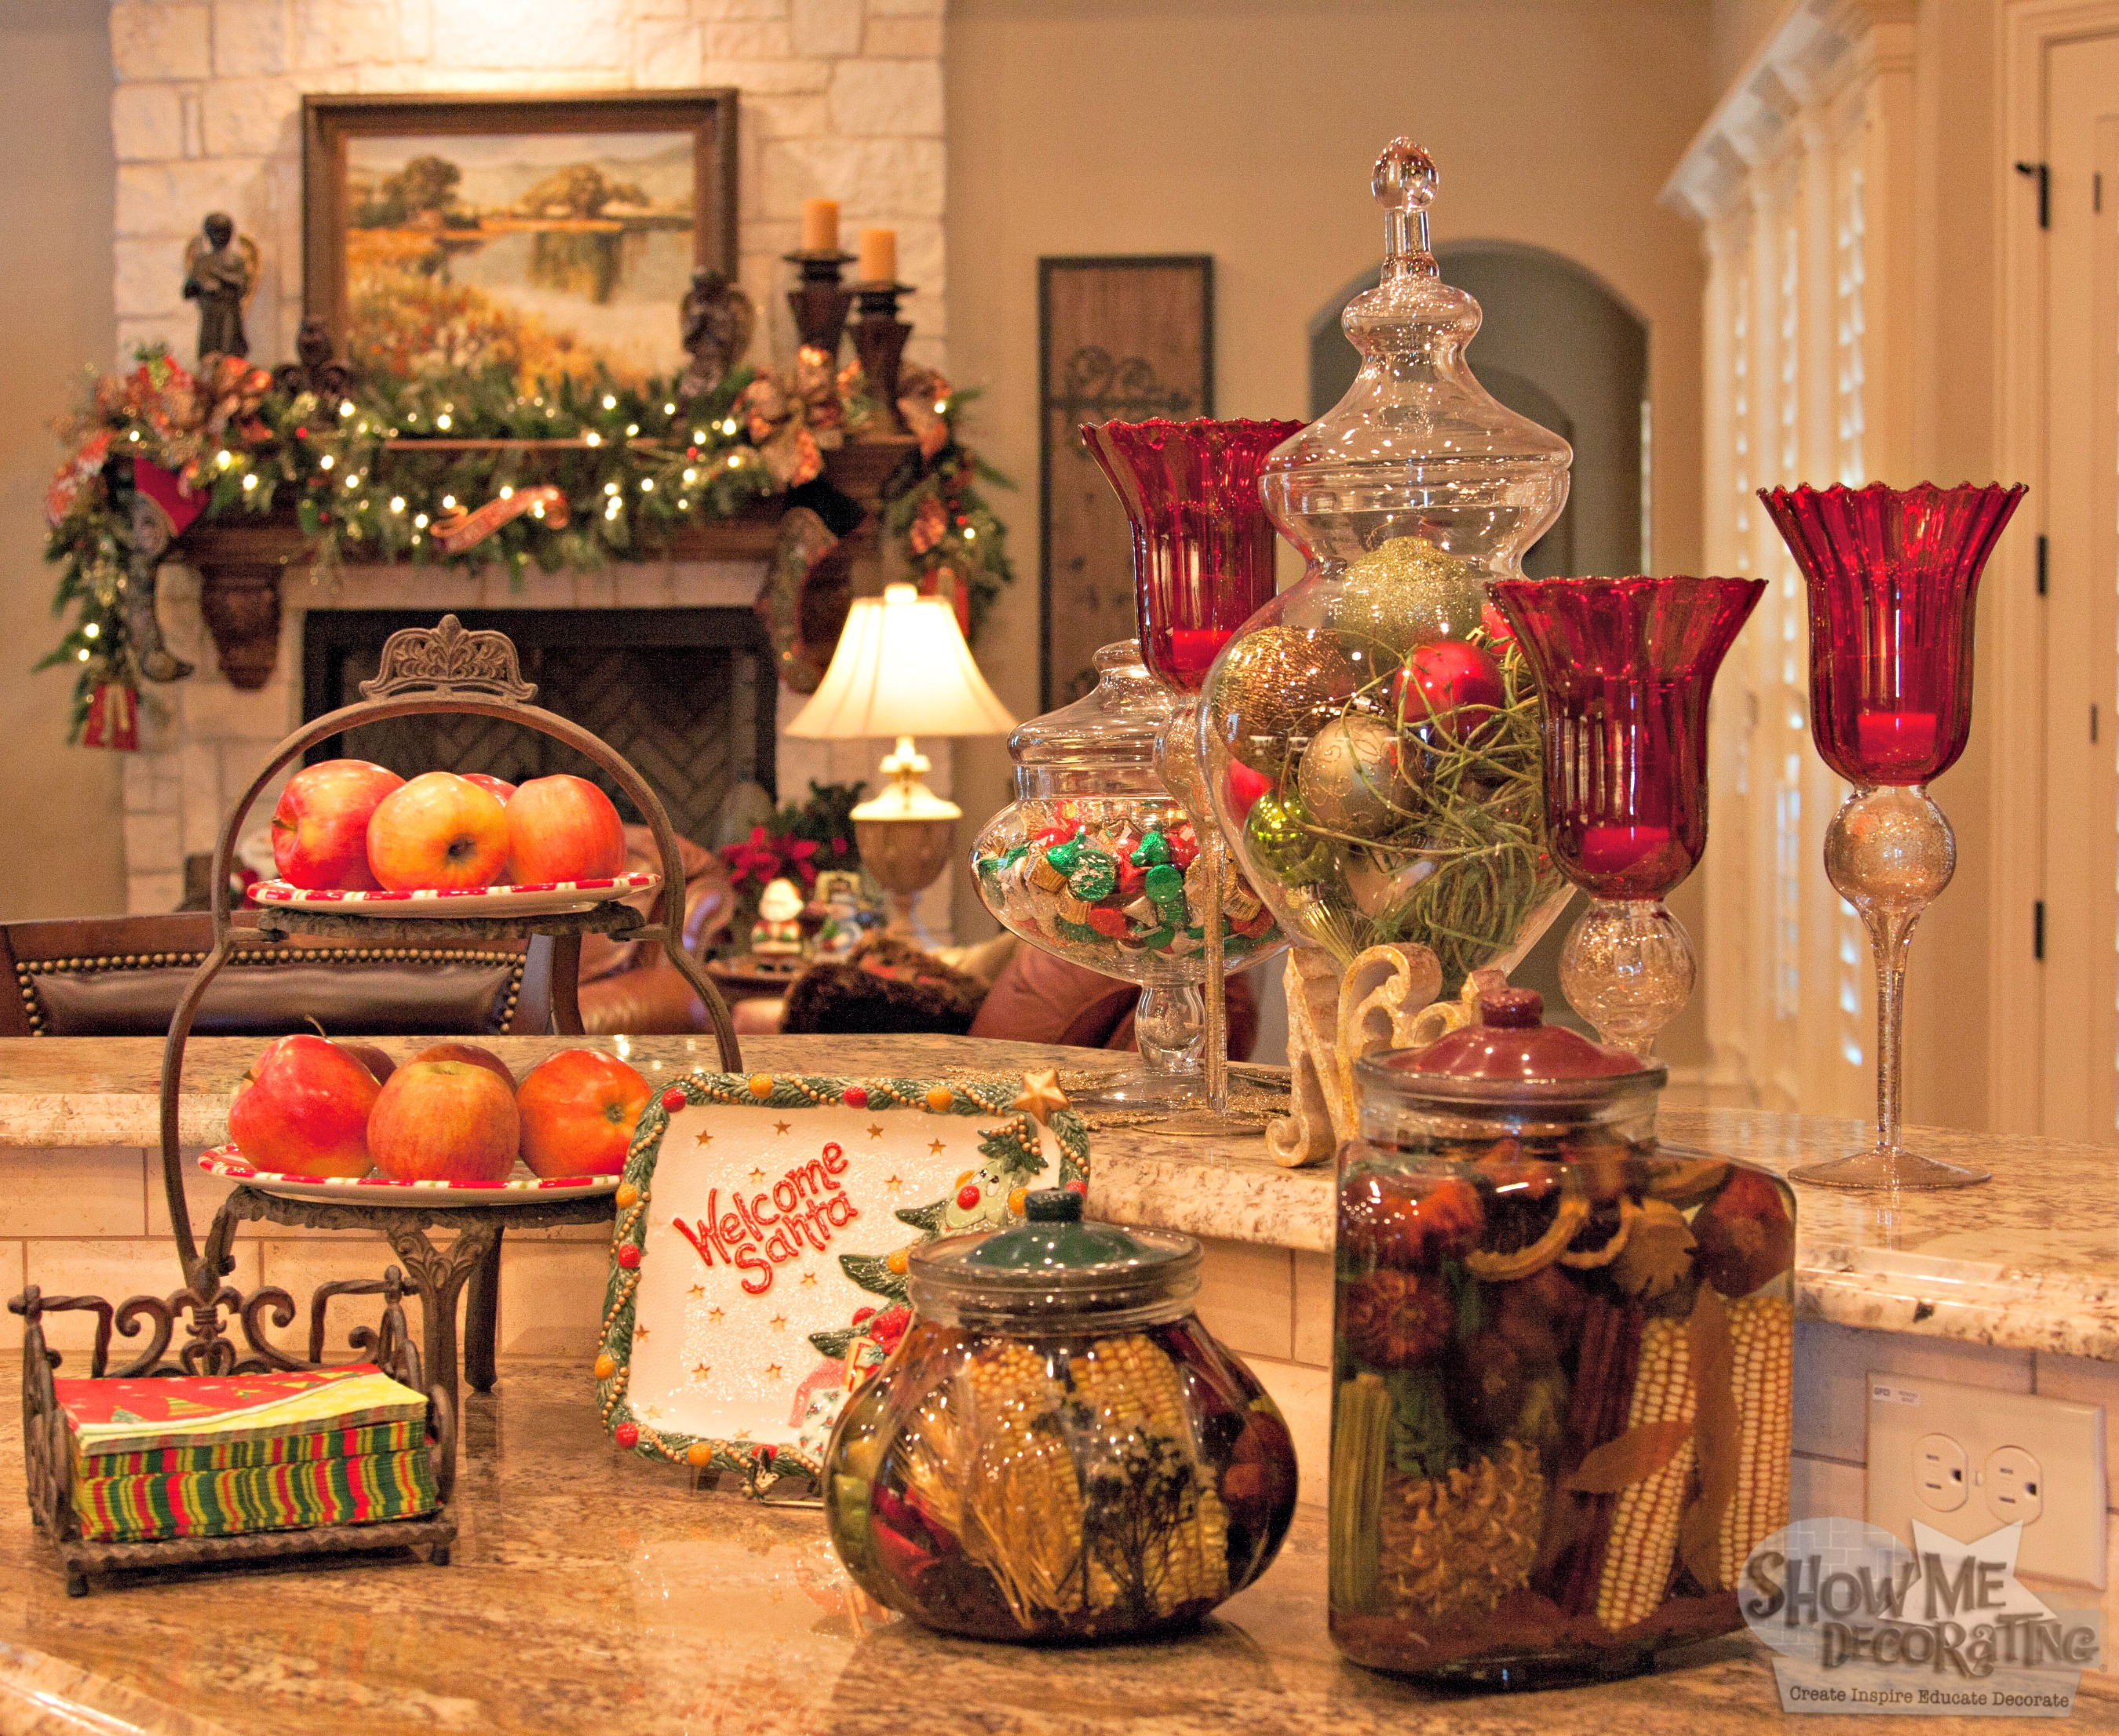 Show me decorating create inspire educate decorate Christmas decorating themes